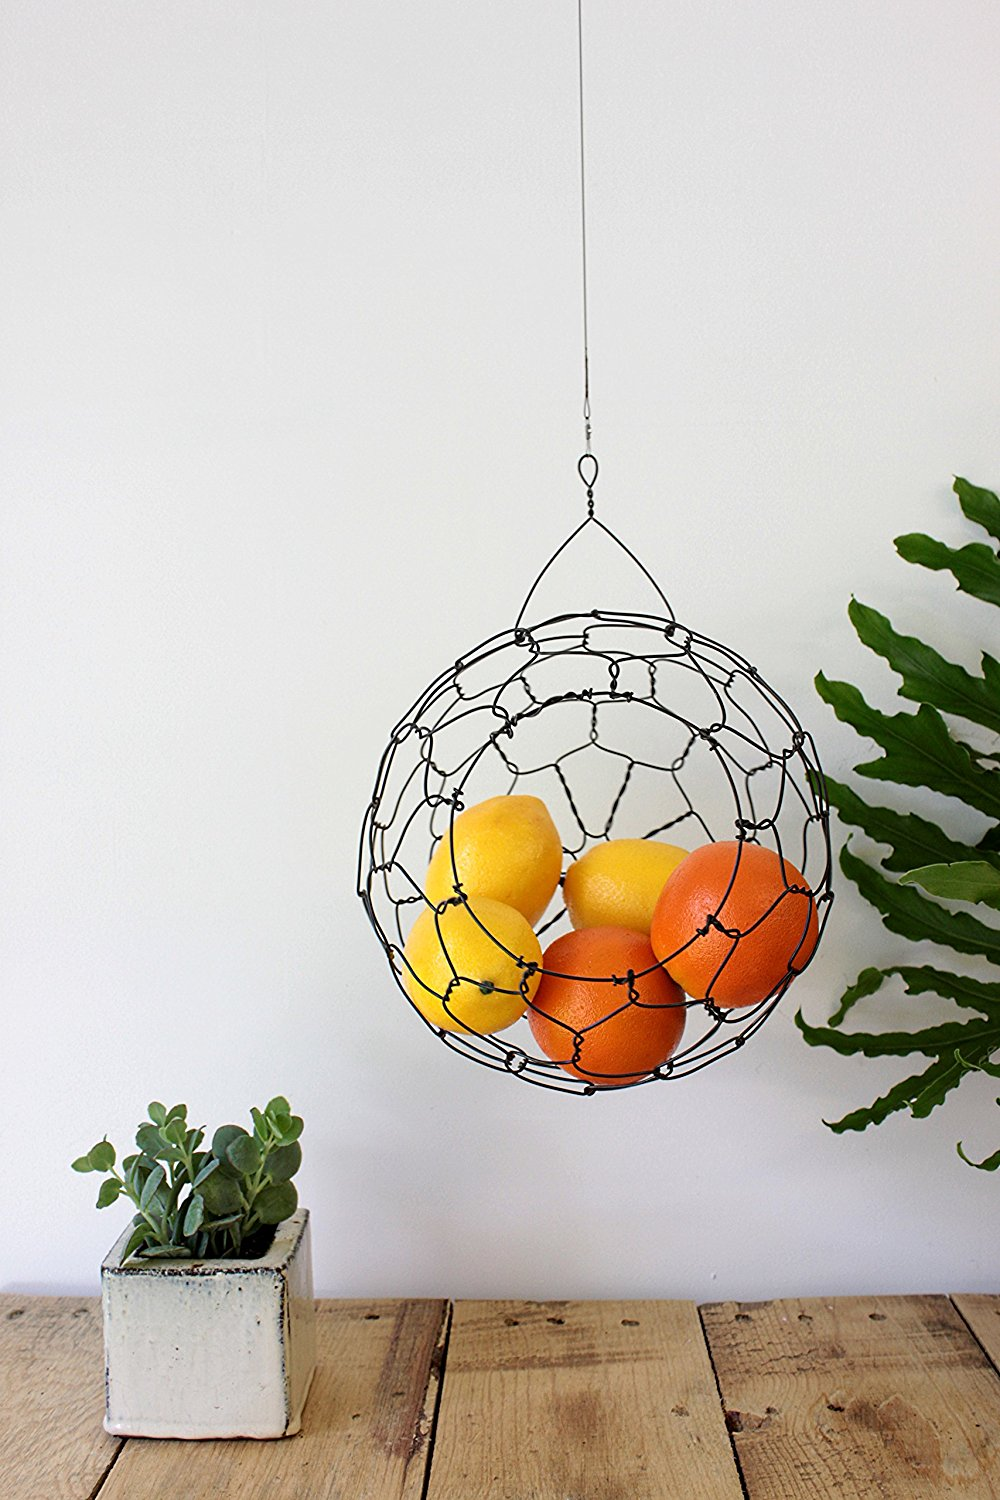 9. Decorative Hanging Baskets - I LOVE this hanging fruit basket. It is just as much decor as it is functional storage. I'm have one and painted it brass to match the rest of my kitchen! I keep citrus fruits in it just like this picture. It is so beautiful!